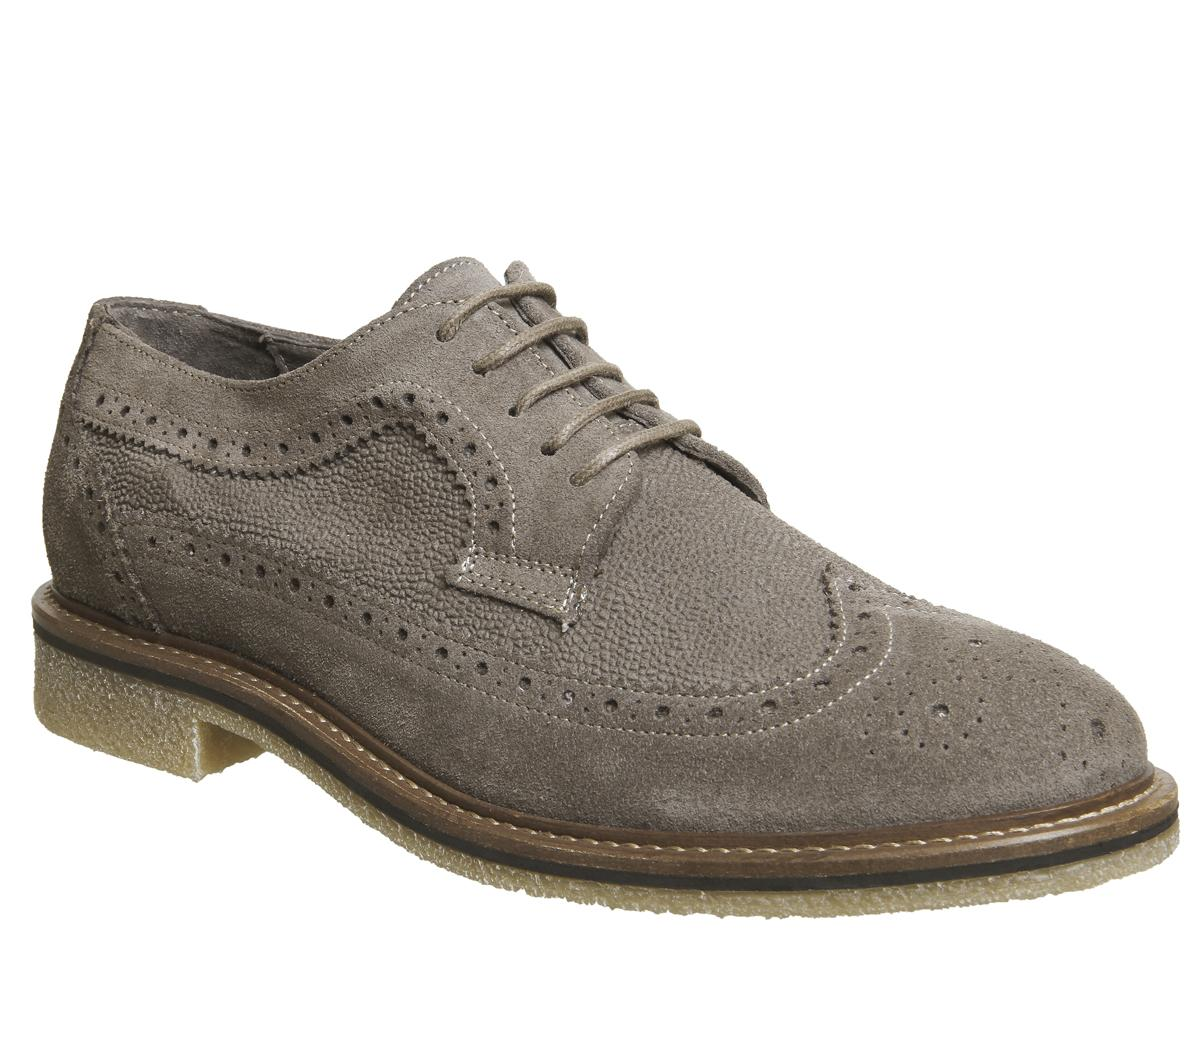 Ghost Brogue Shoes